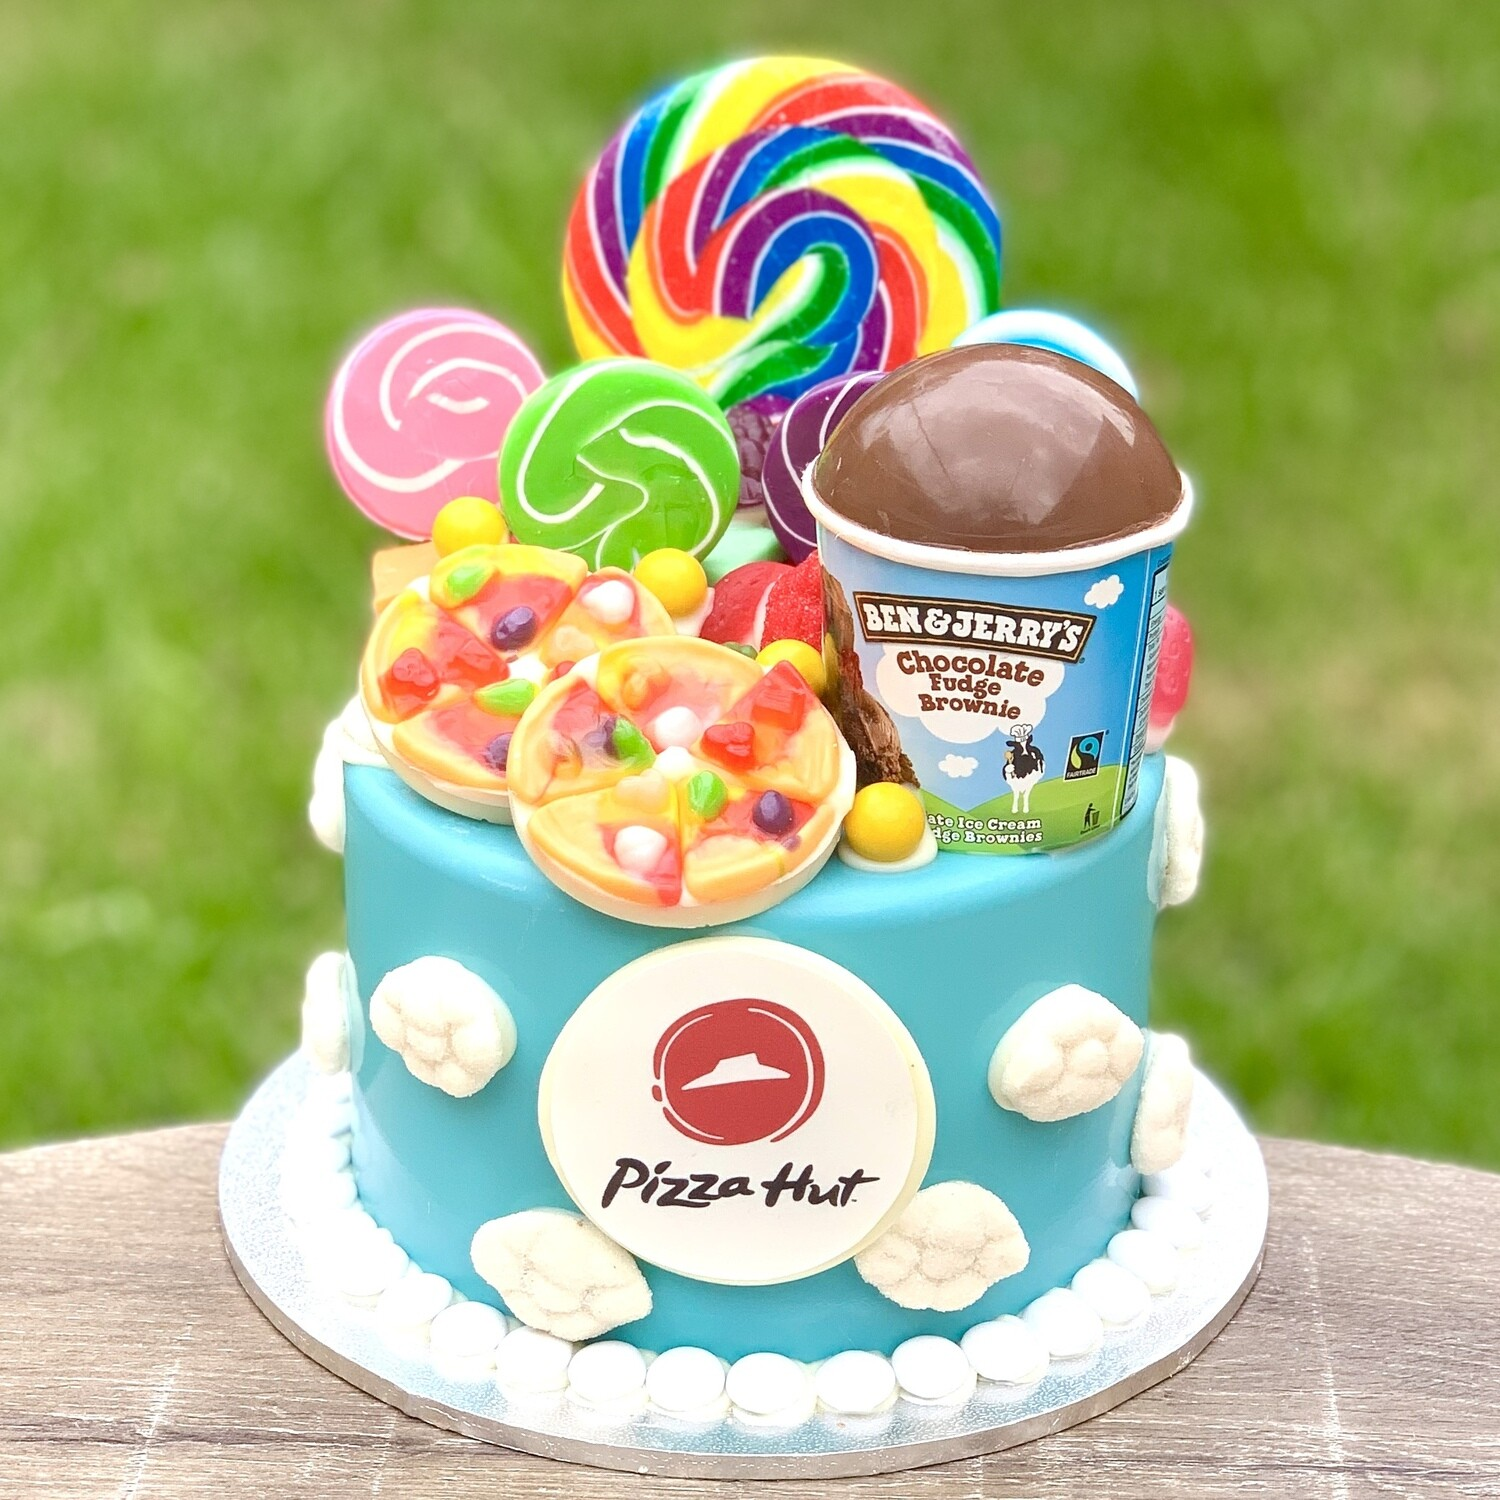 Pizza Hut / Ben and Jerry's